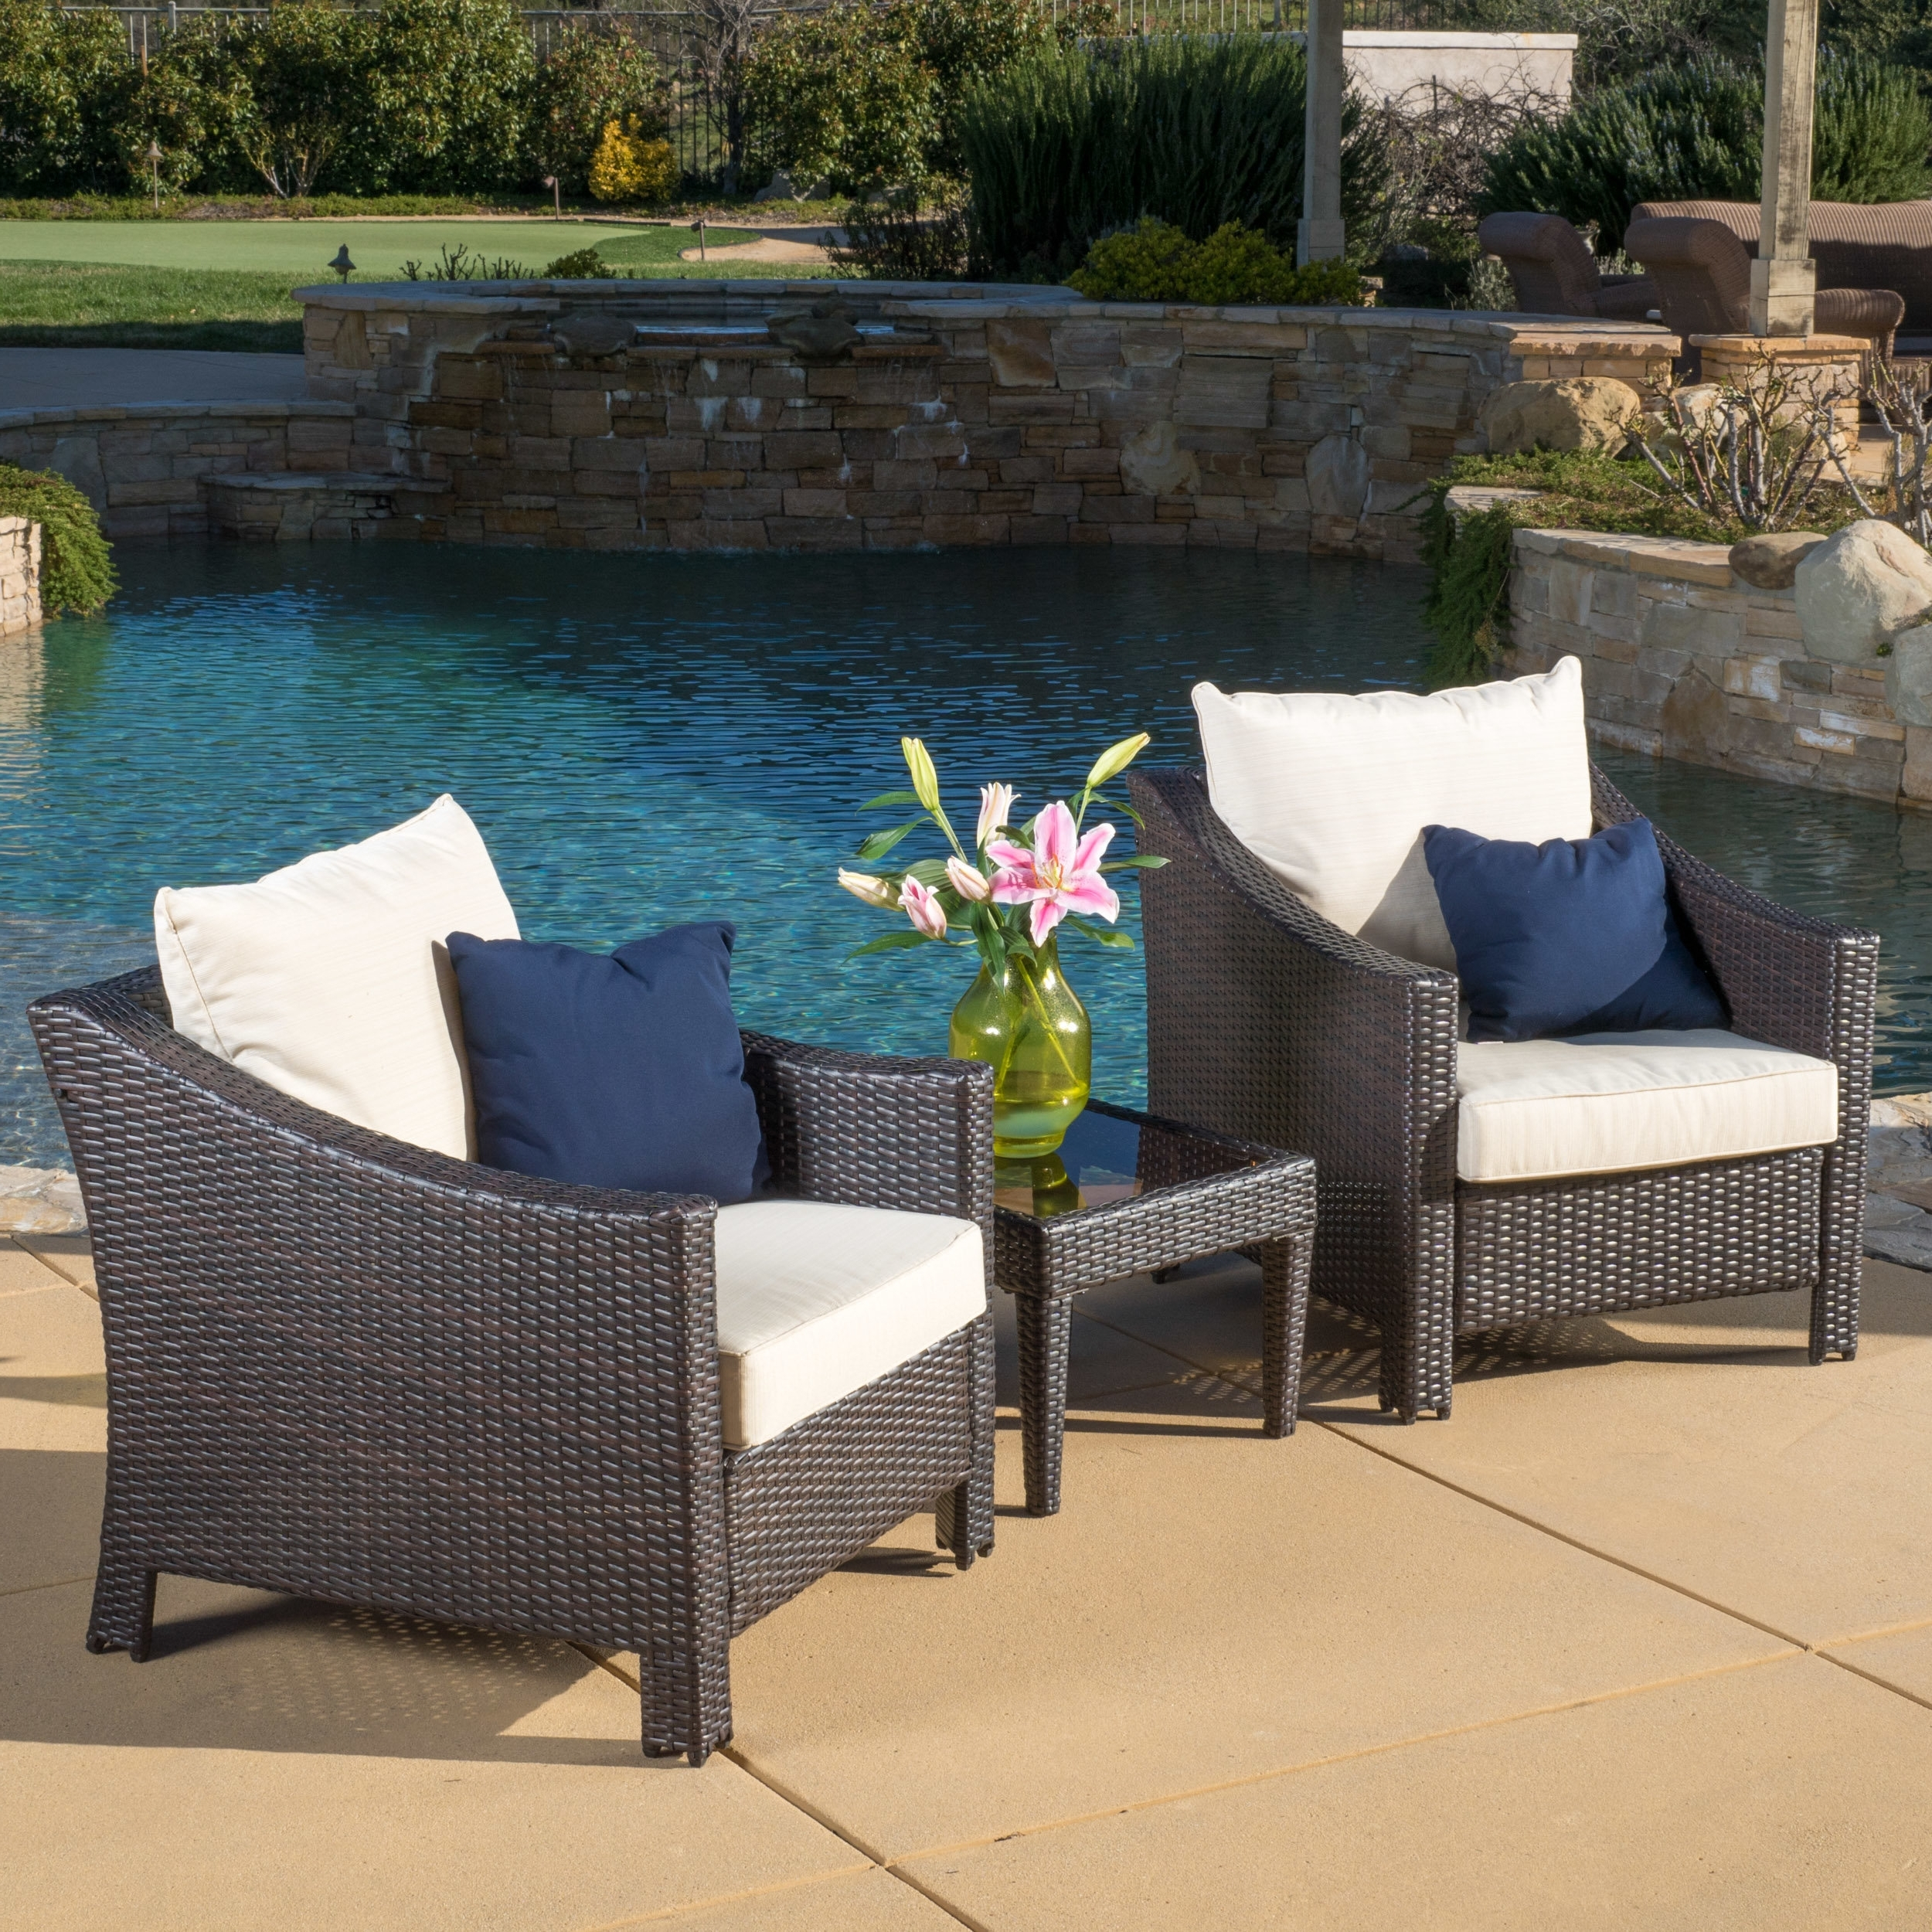 2019 Discount Sling Patio Furniture 4 Piece Wicker Chat Set In Brown Throughout Sling Patio Conversation Sets (View 11 of 20)